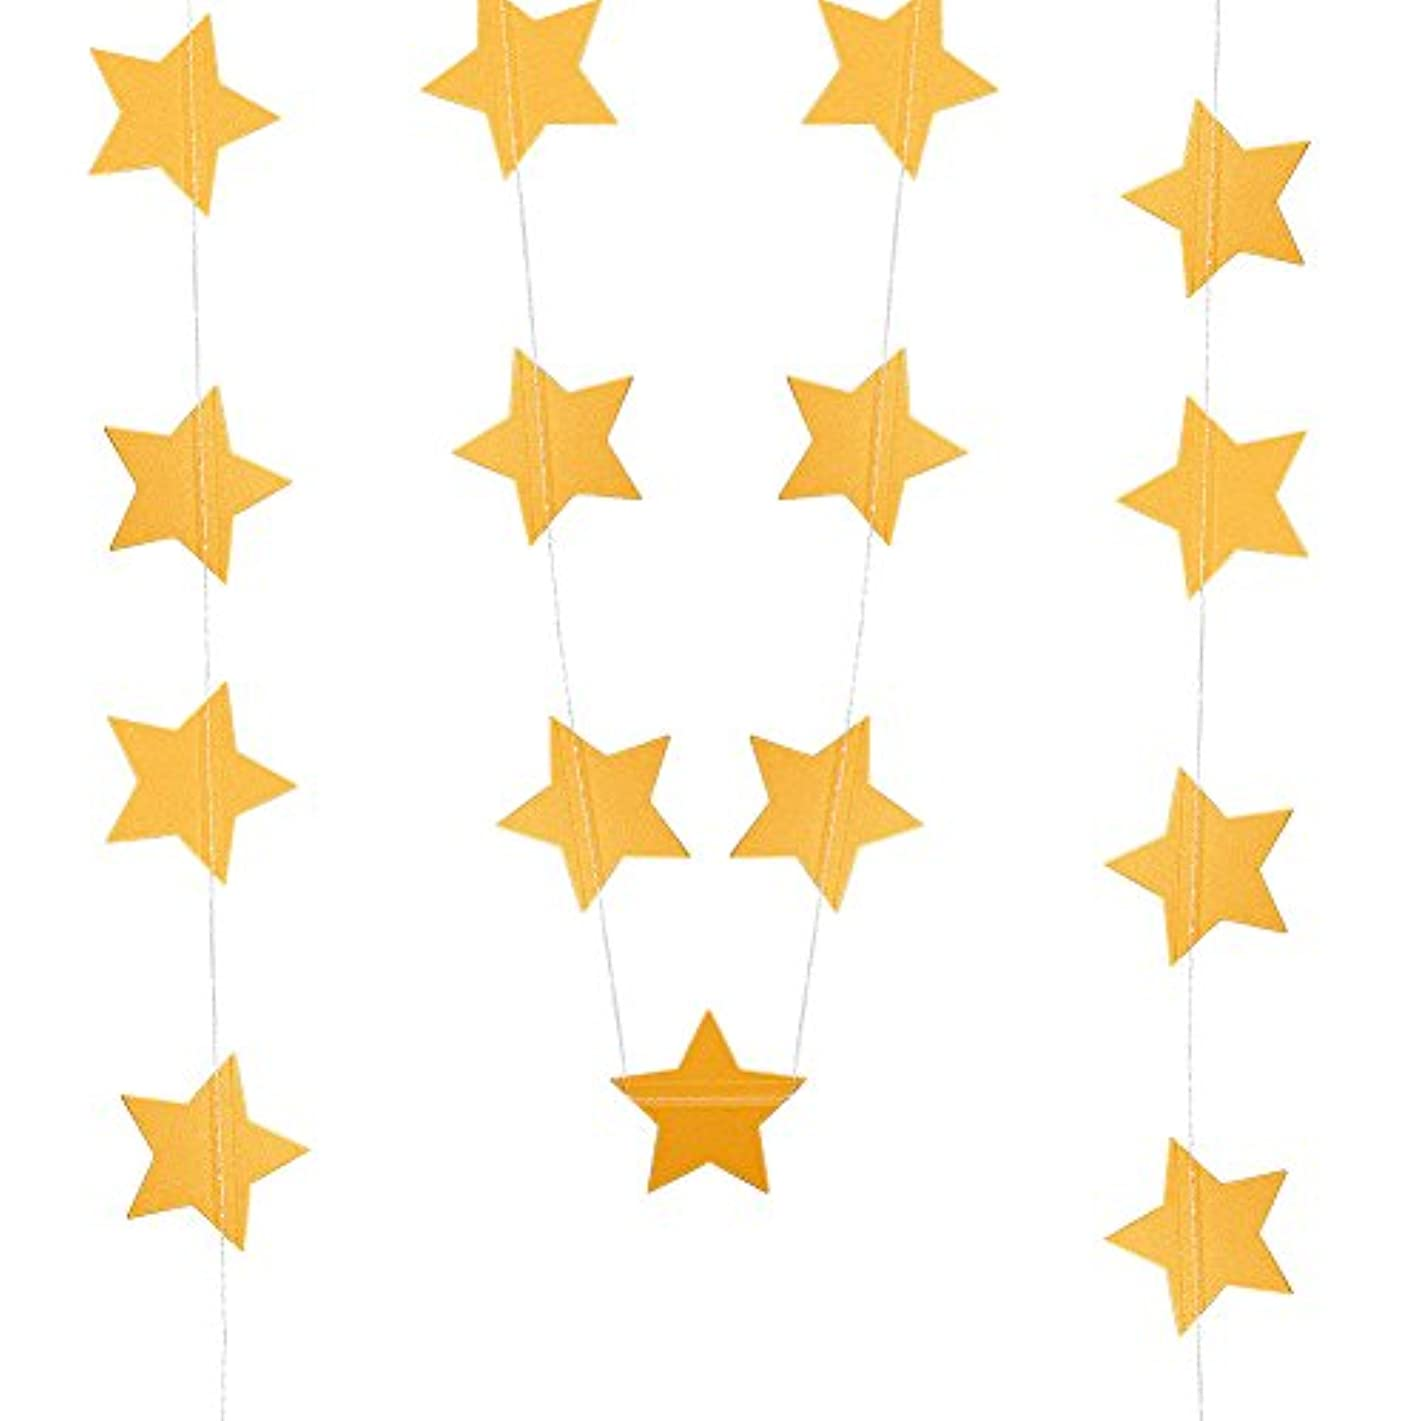 BENECREAT 52 Feet Paper Star Garland String Bunting Banner Hanging Decoration for Wedding Holiday Party Birthday, 2.6 Inches (Gold)